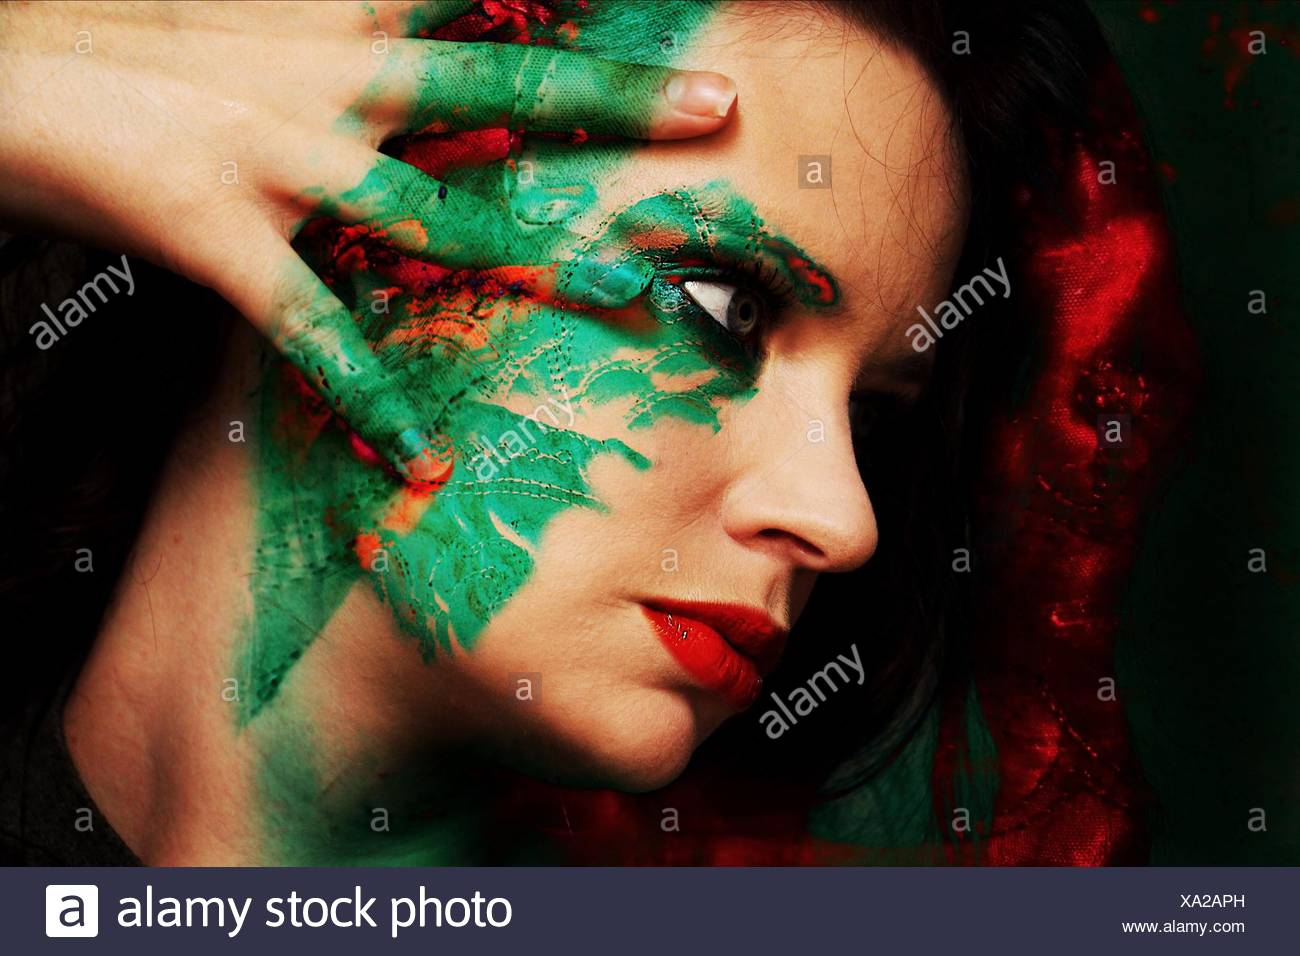 Portrait Of Beautiful Woman with Face Paint Photo Stock